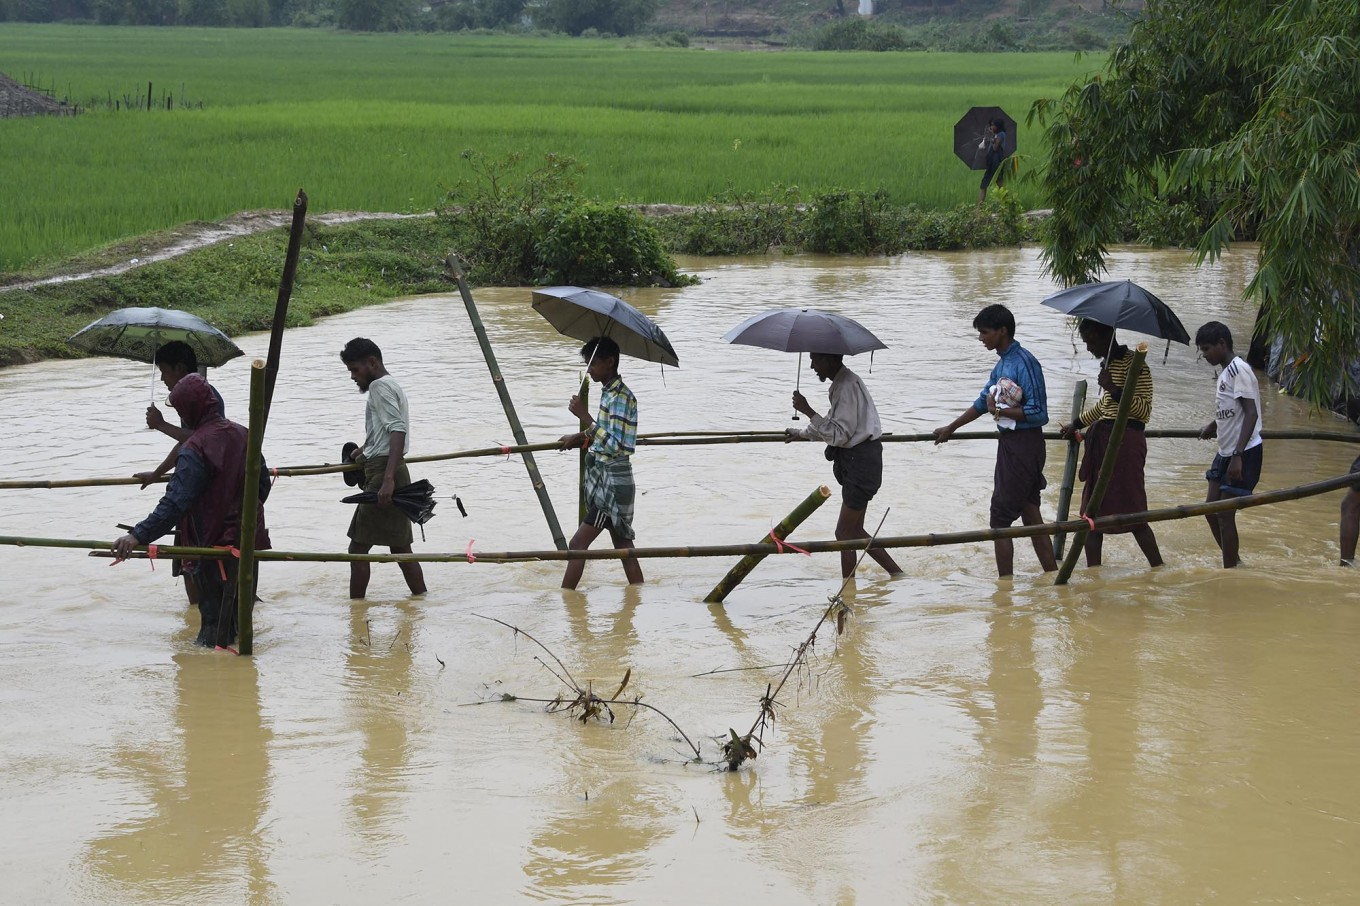 Rohingya Muslim refugees cross floodwater in Thyangkhali refugee camp near the Bangladesh town of Ukhia on September 17, 2017. Heavy monsoon rain heaped new misery September 17 on hundreds of thousands of Muslim Rohinyga stuck in makeshift camps in Bangladesh after fleeing violence in Myanmar, as authorities started a drive to force them to a new site. The United Nations says 409,000 Rohingyas have now overwhelmed Cox's Bazar since August 25 when the military in Buddhist-majority Myanmar launched operations in Rakhine state. AFP/ Dominique Faget